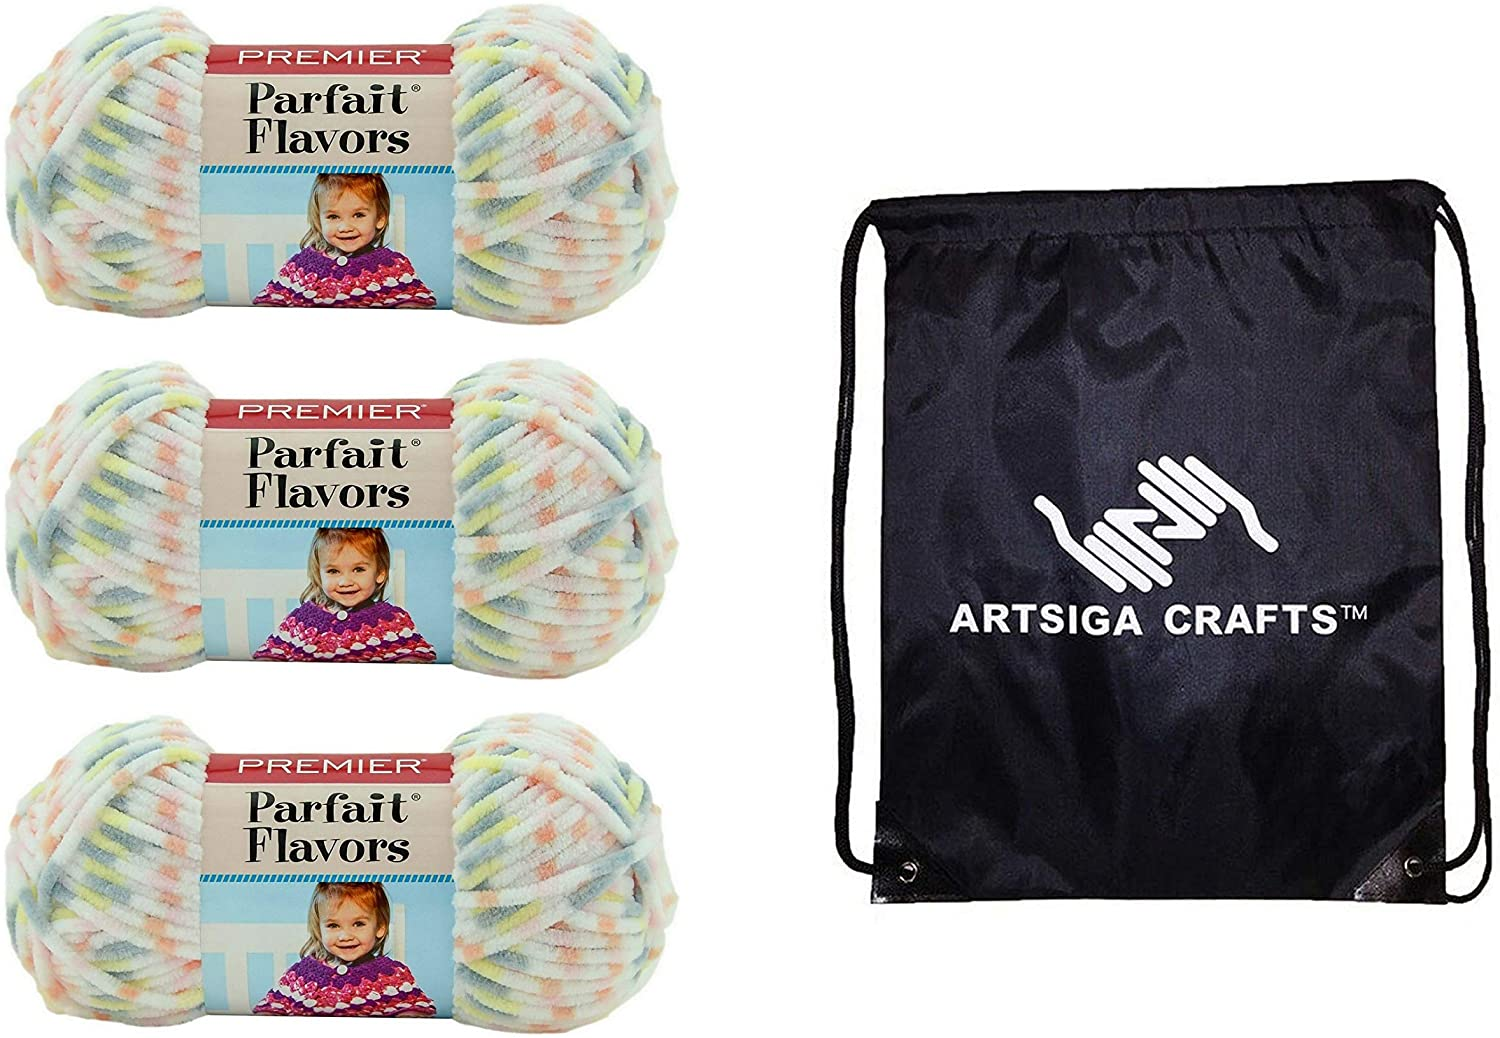 Premier Knitting Yarn Parfait Flavors Ambrosia 3-Skein Factory Pack (Same Dye Lot) 31-21 Bundle with 1 Artsiga Crafts Project Bag